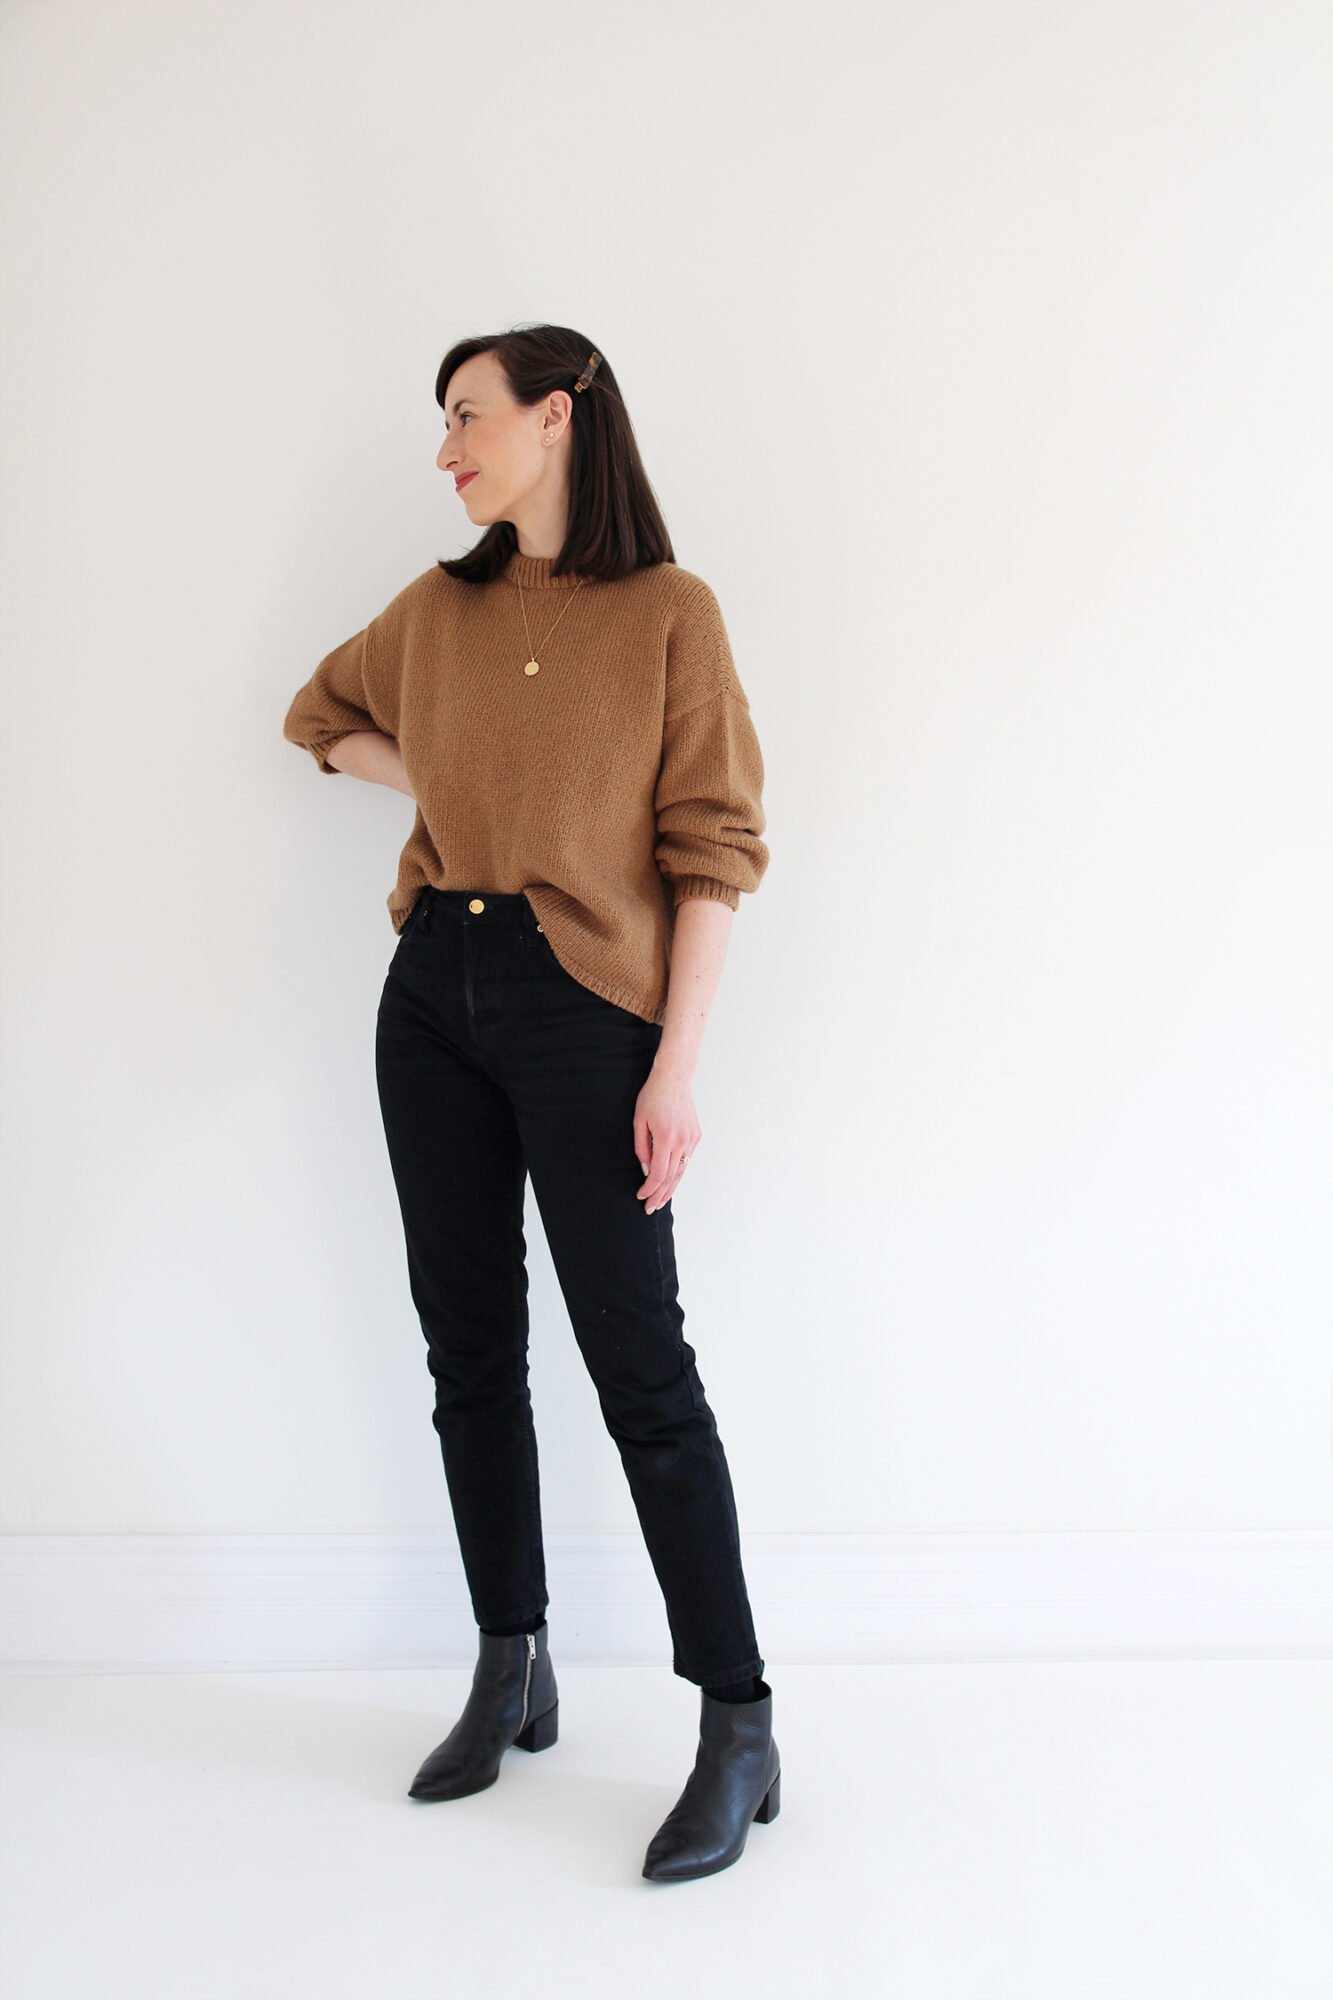 Woman wearing a relaxed alpaca knit sweater in camel, tucked into black jeans with gold jewelry and a tortoise barrette.